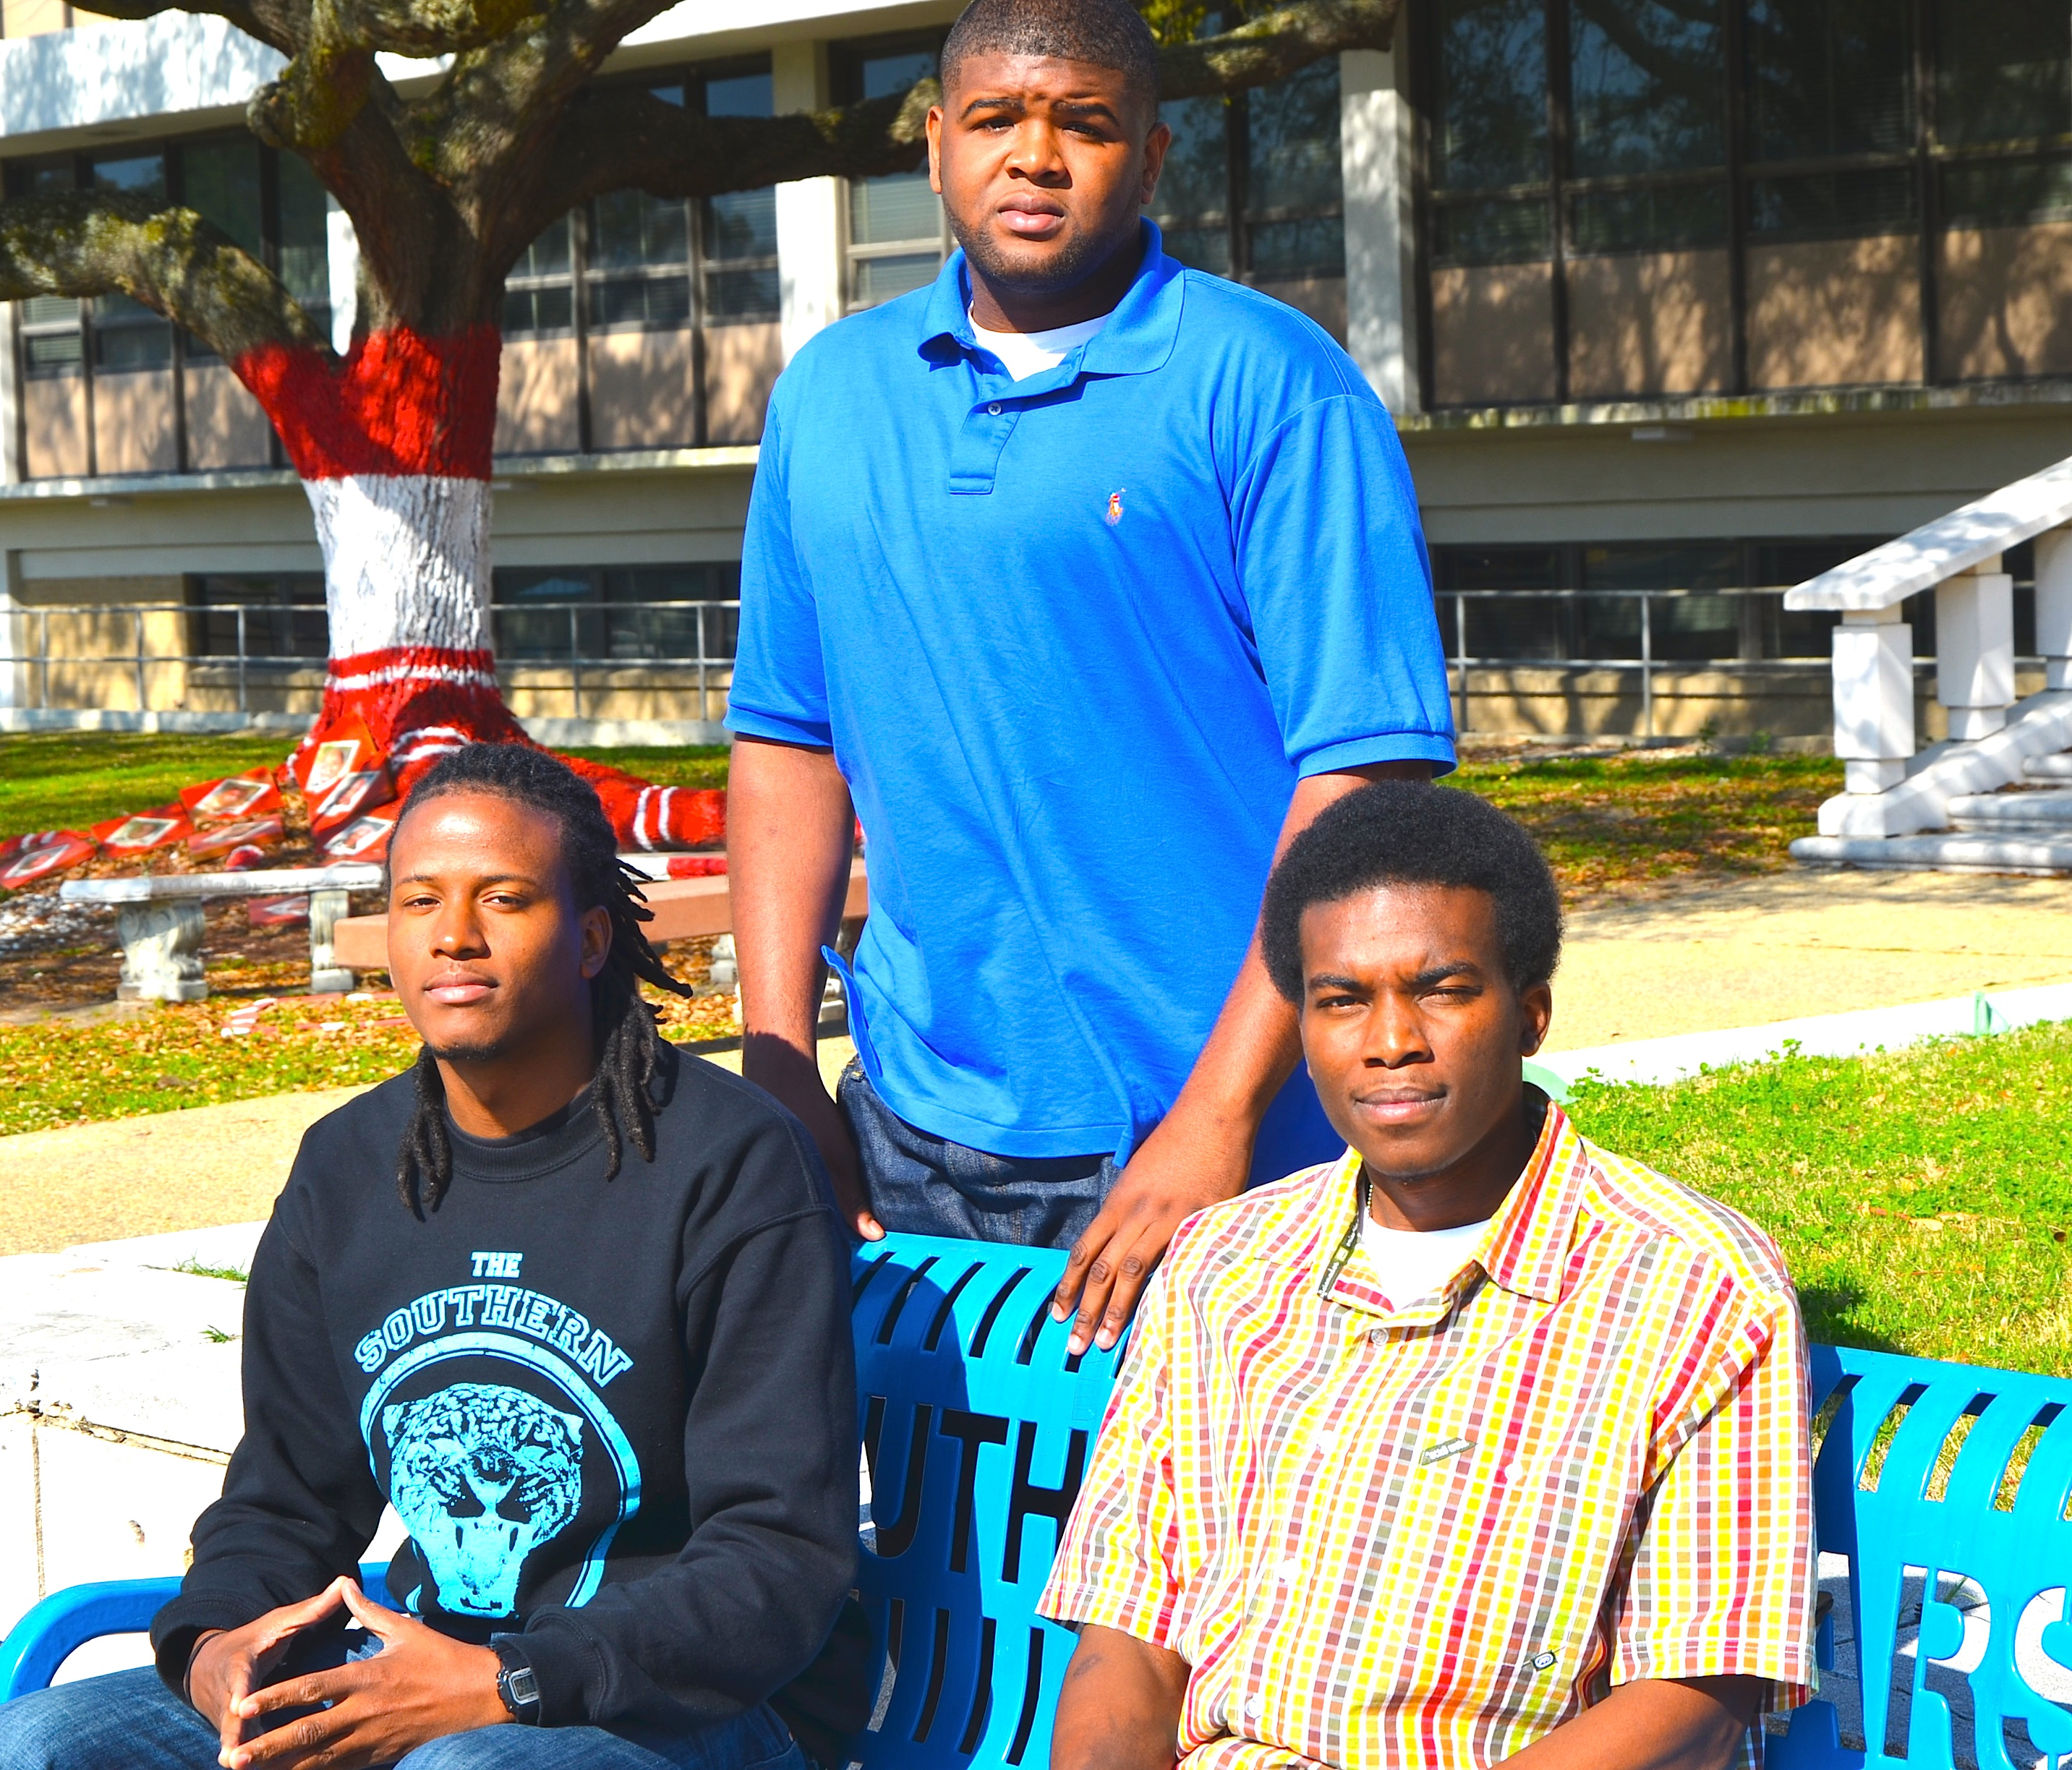 From left to right: Joseph Coleman, Tevin Wright and Brandon Jay